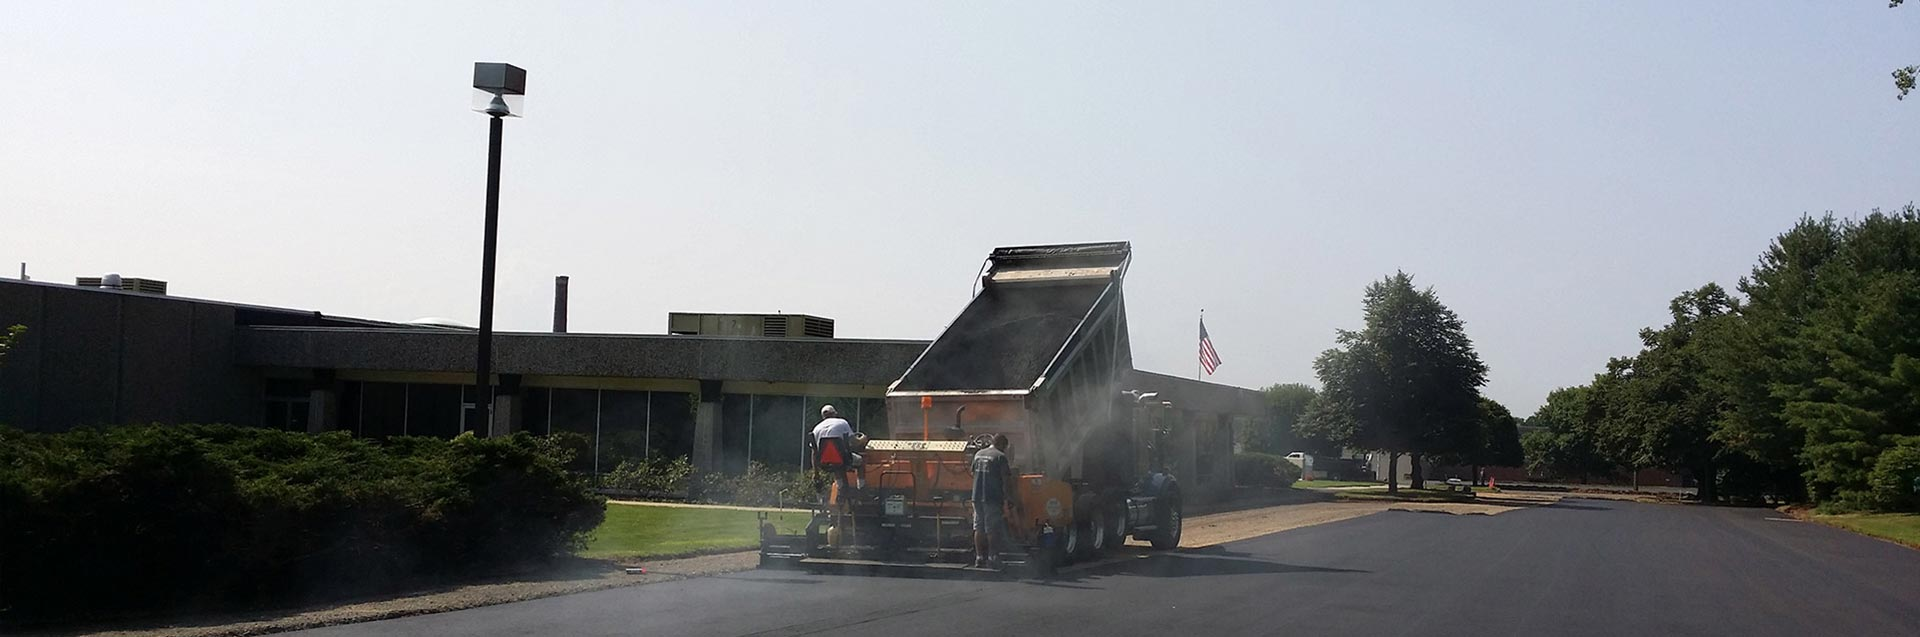 Commercial Paving Contractor Krukoff Paving